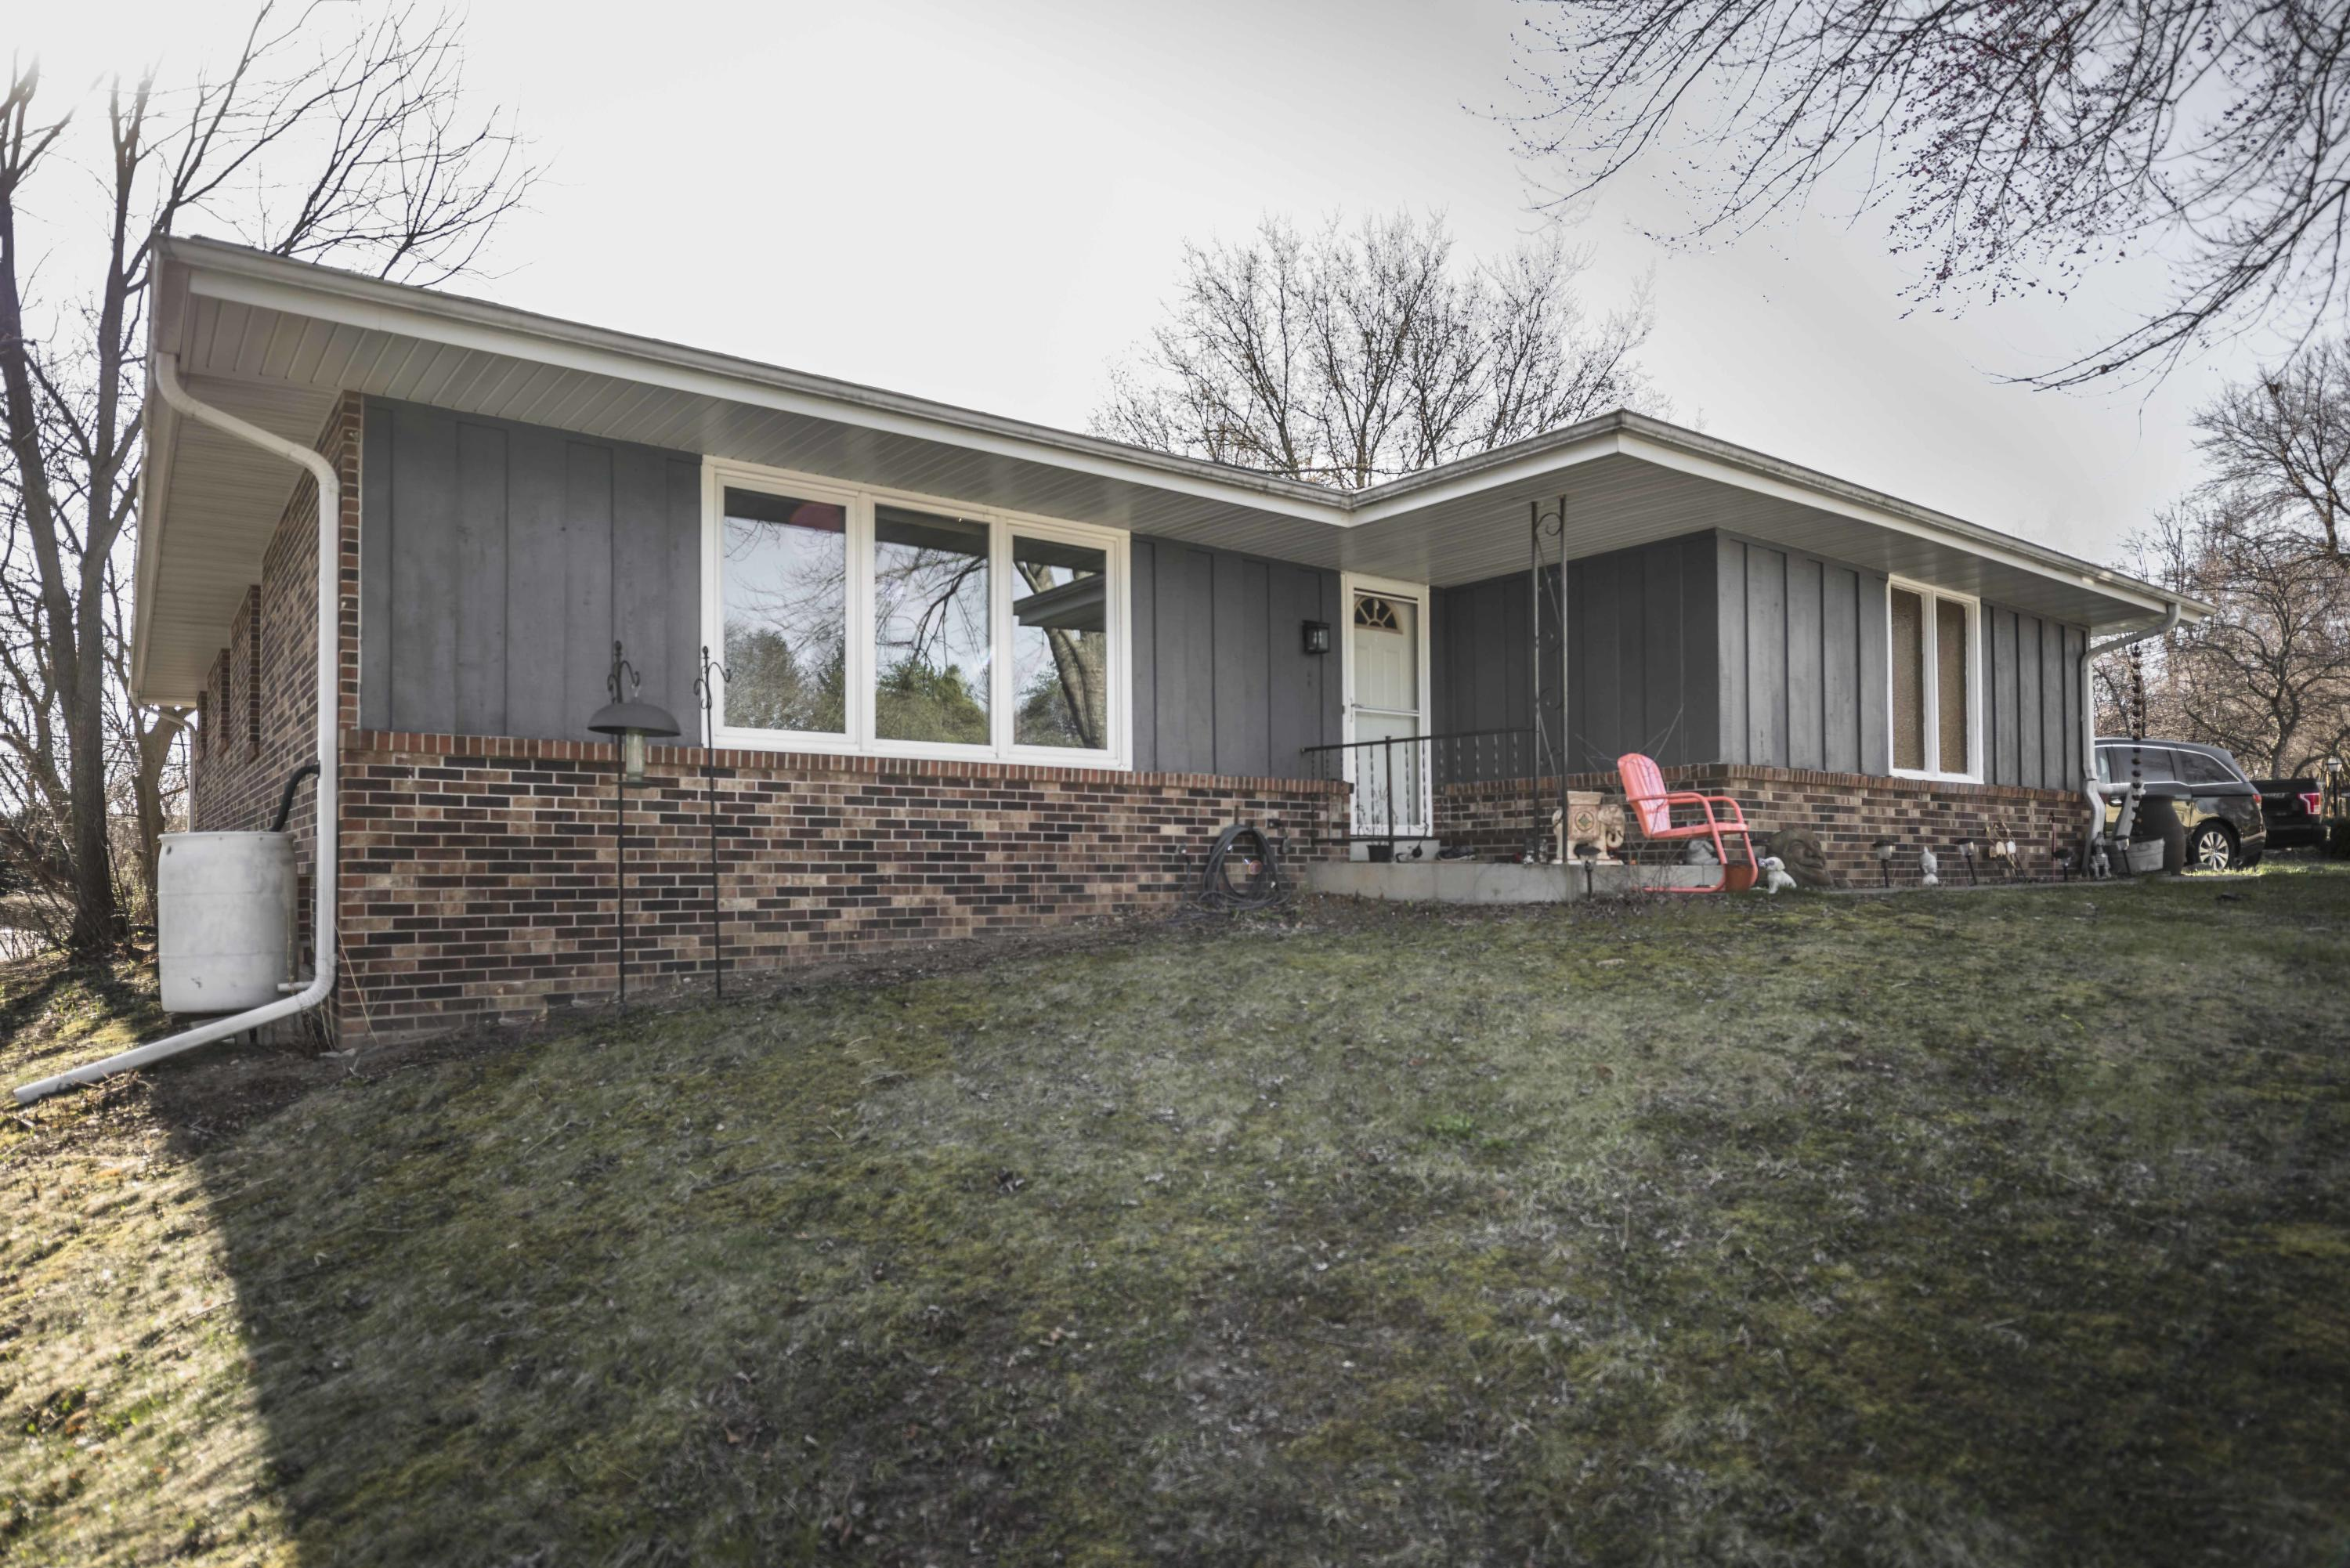 2309 Pebble Valley Rd, Waukesha, Wisconsin 53188, 3 Bedrooms Bedrooms, 6 Rooms Rooms,2 BathroomsBathrooms,Single-Family,For Sale,Pebble Valley Rd,1685204